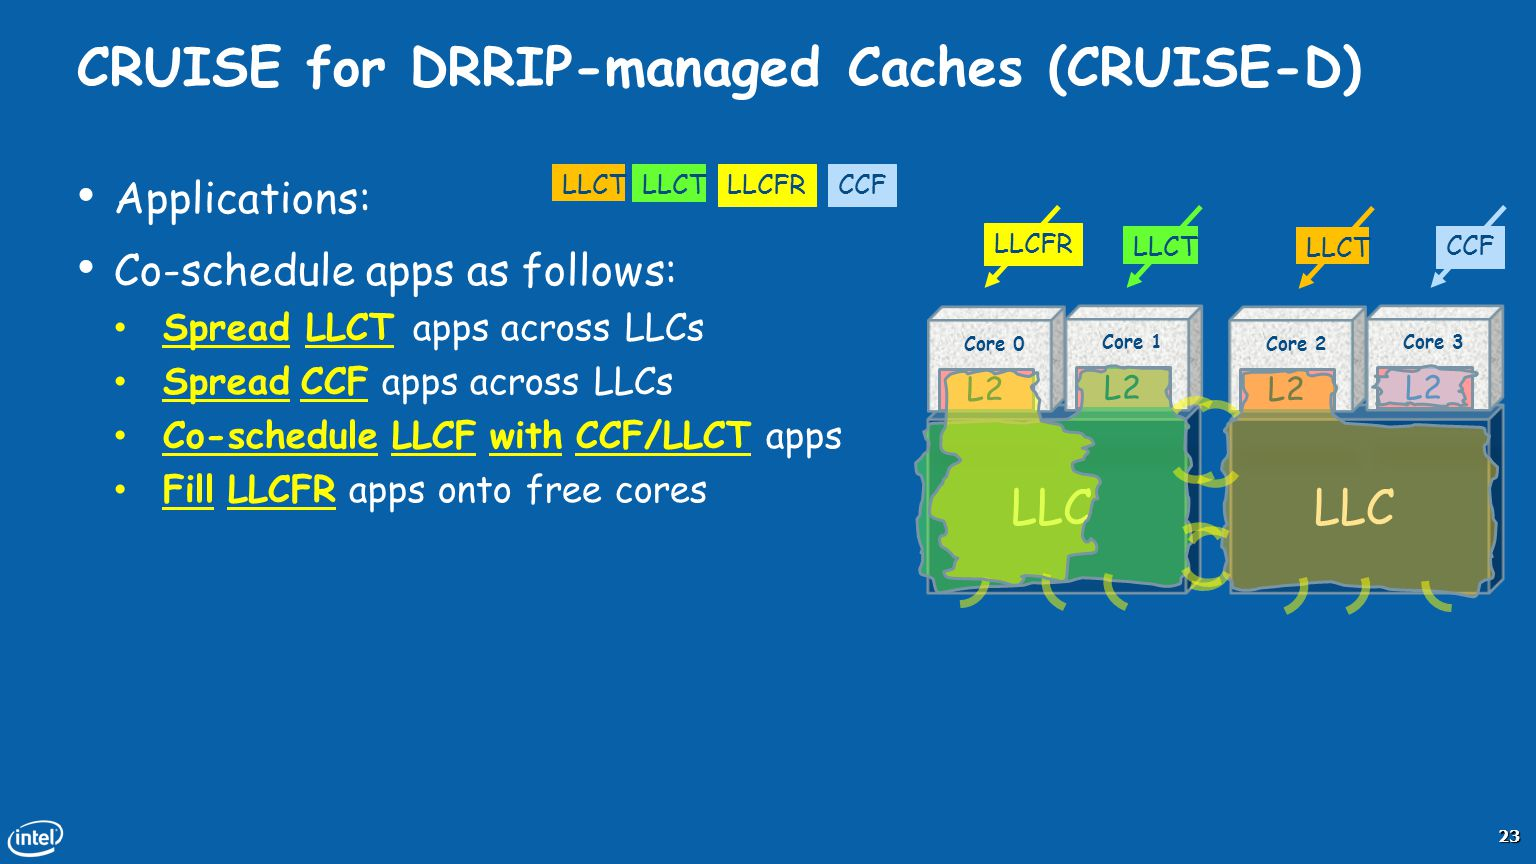 CRUISE for DRRIP-managed Caches (CRUISE-D)